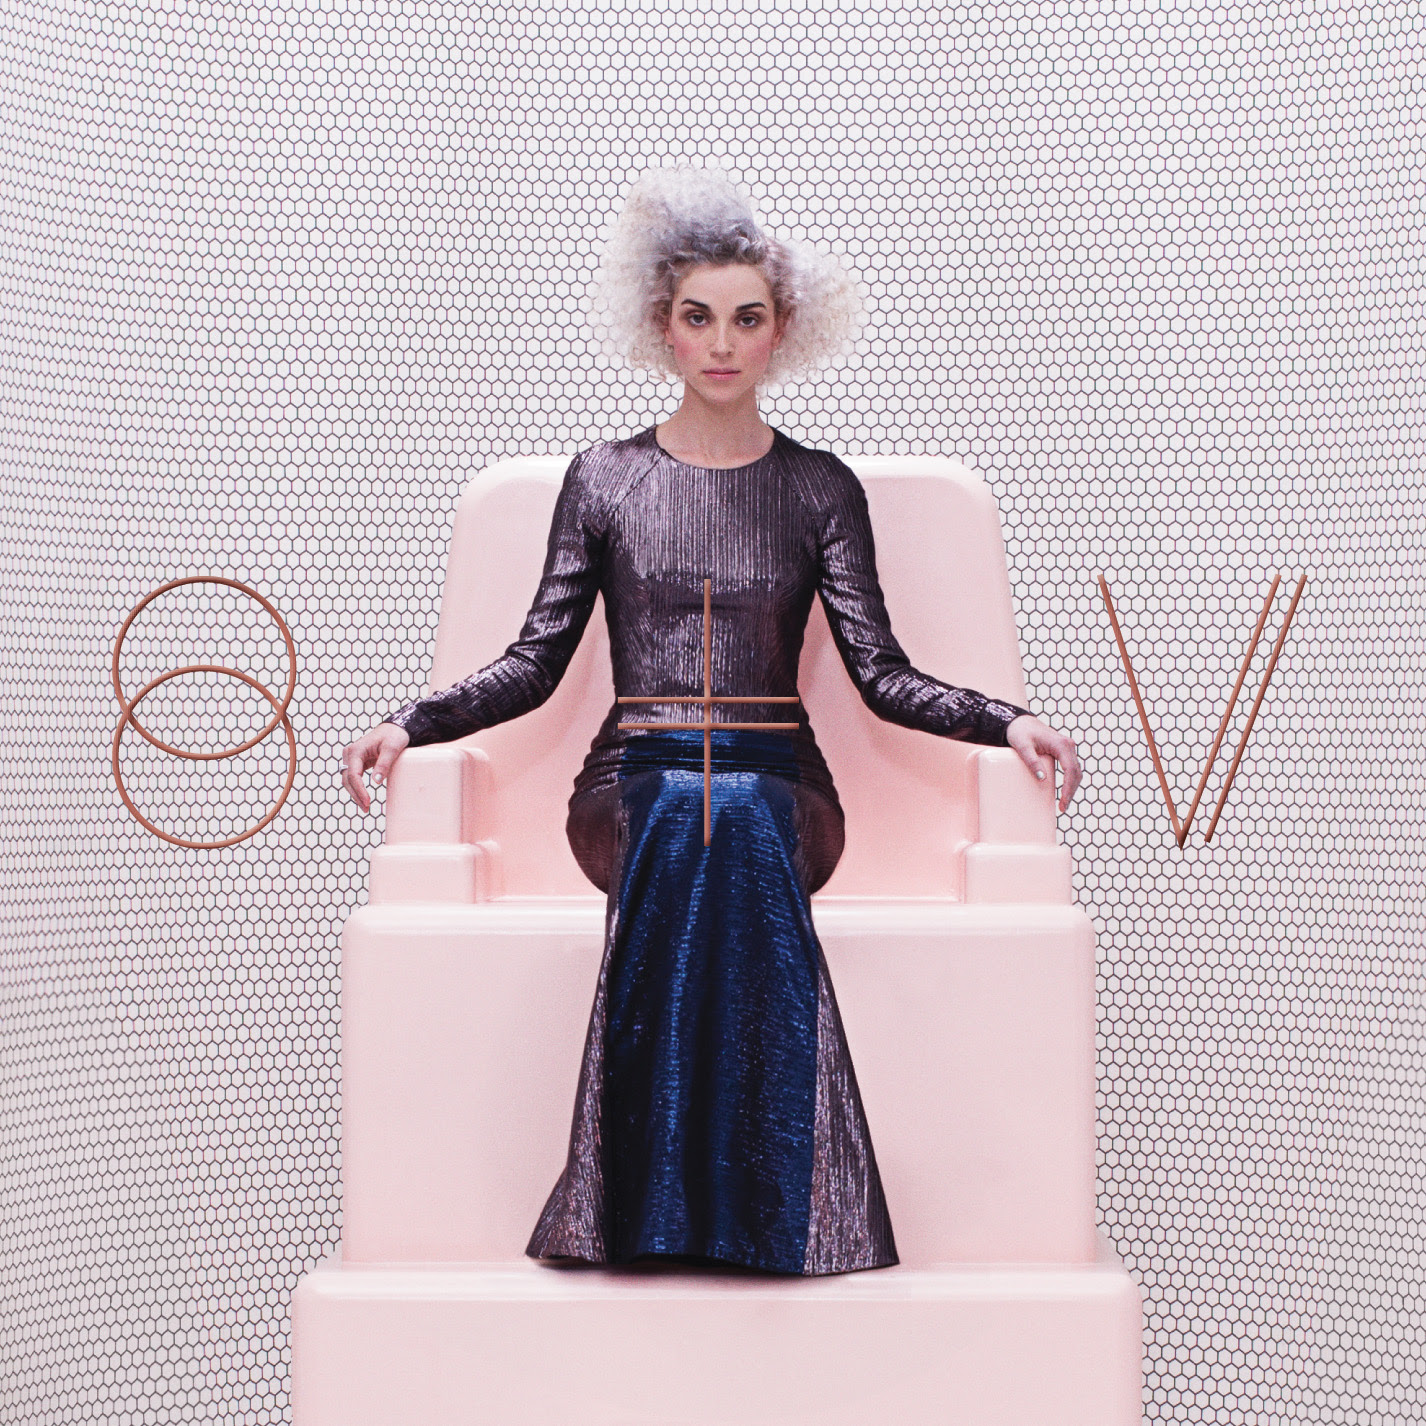 Artist: St. Vincent Album: St. Vincent.   KEVIN: STREAM IT PAUL: BUY IT MADELYN: BUY IT ANDRE: STREAM IT  Listen on: Rdio | Spotify